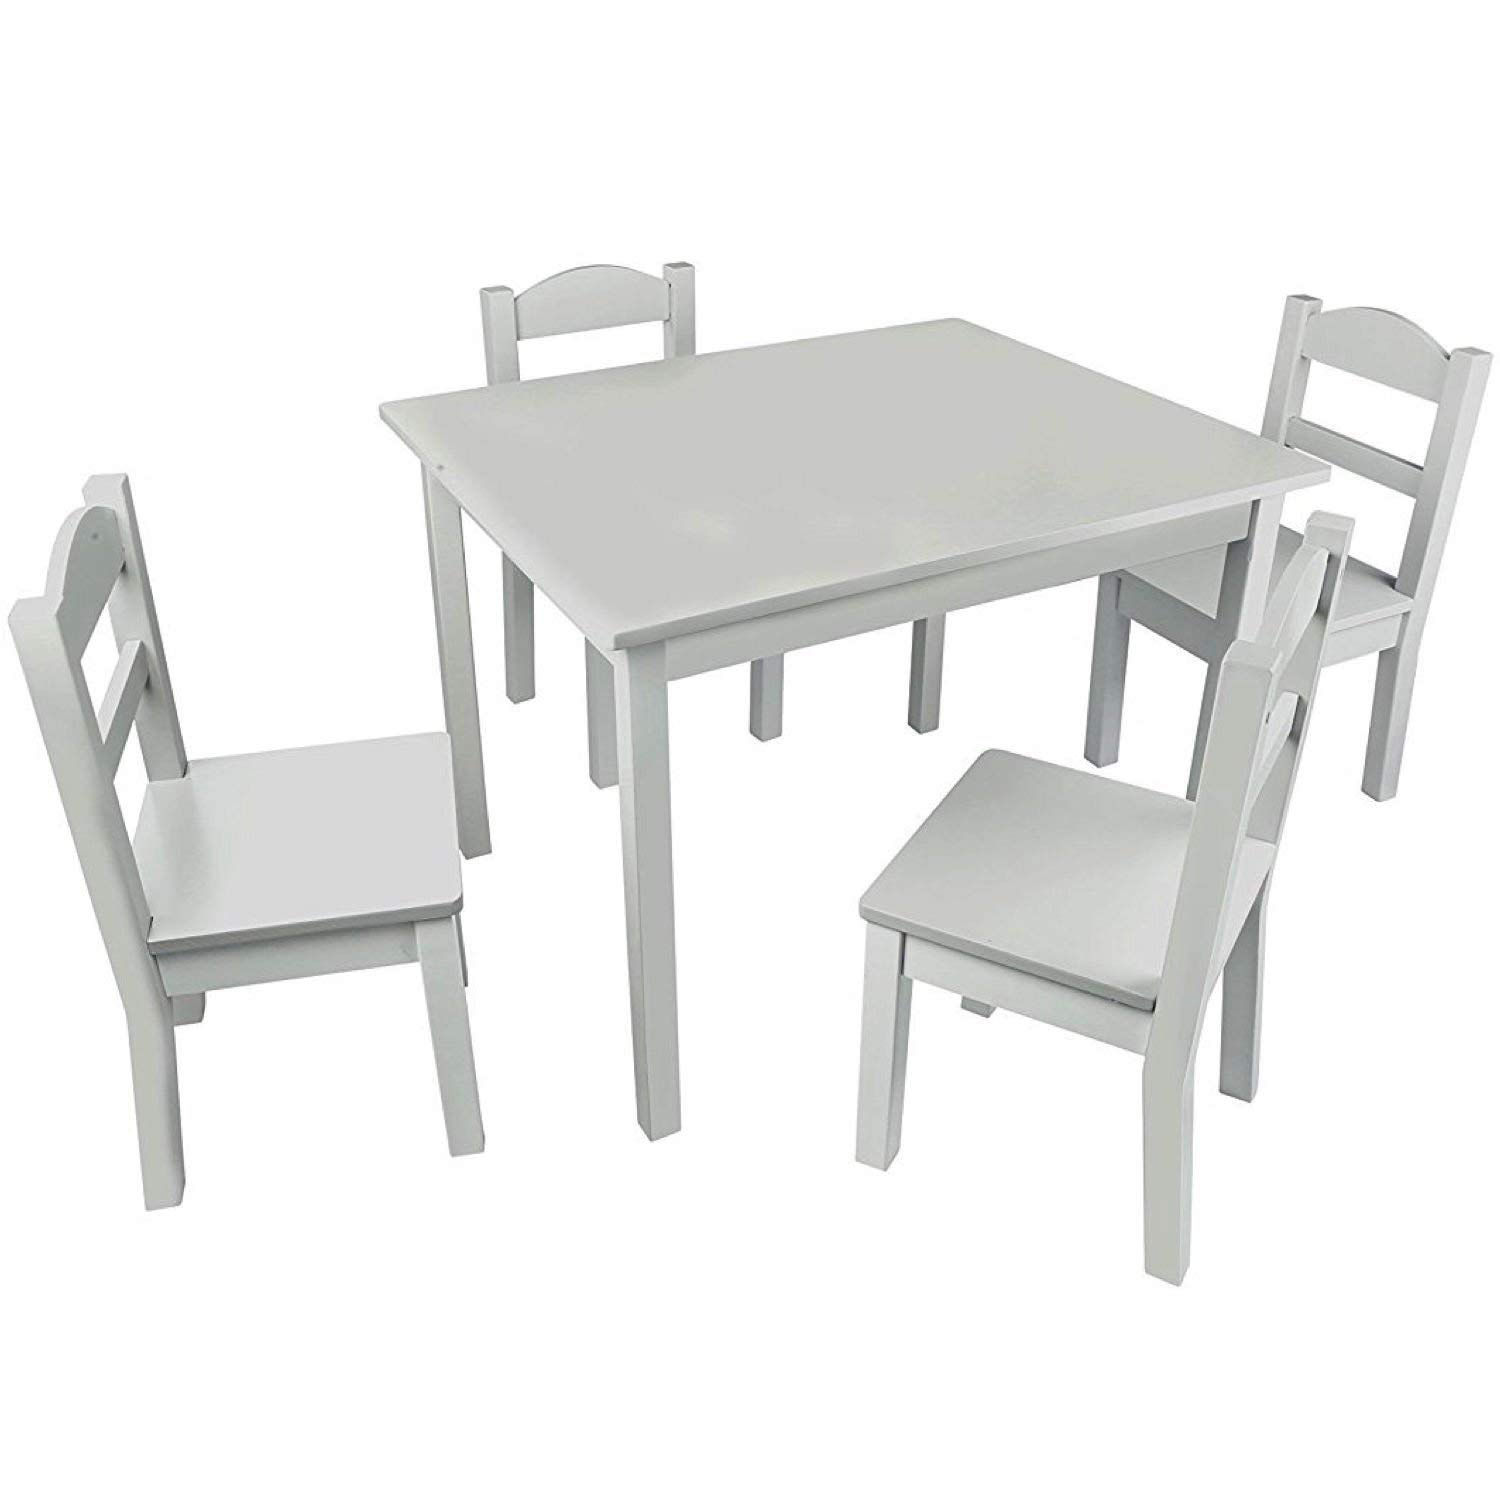 Pidoko Kids Table and Chairs Set Gray - 4 Chairs and 1 Activity Table for Children - Educational Toddlers Furniture Set (Grey)